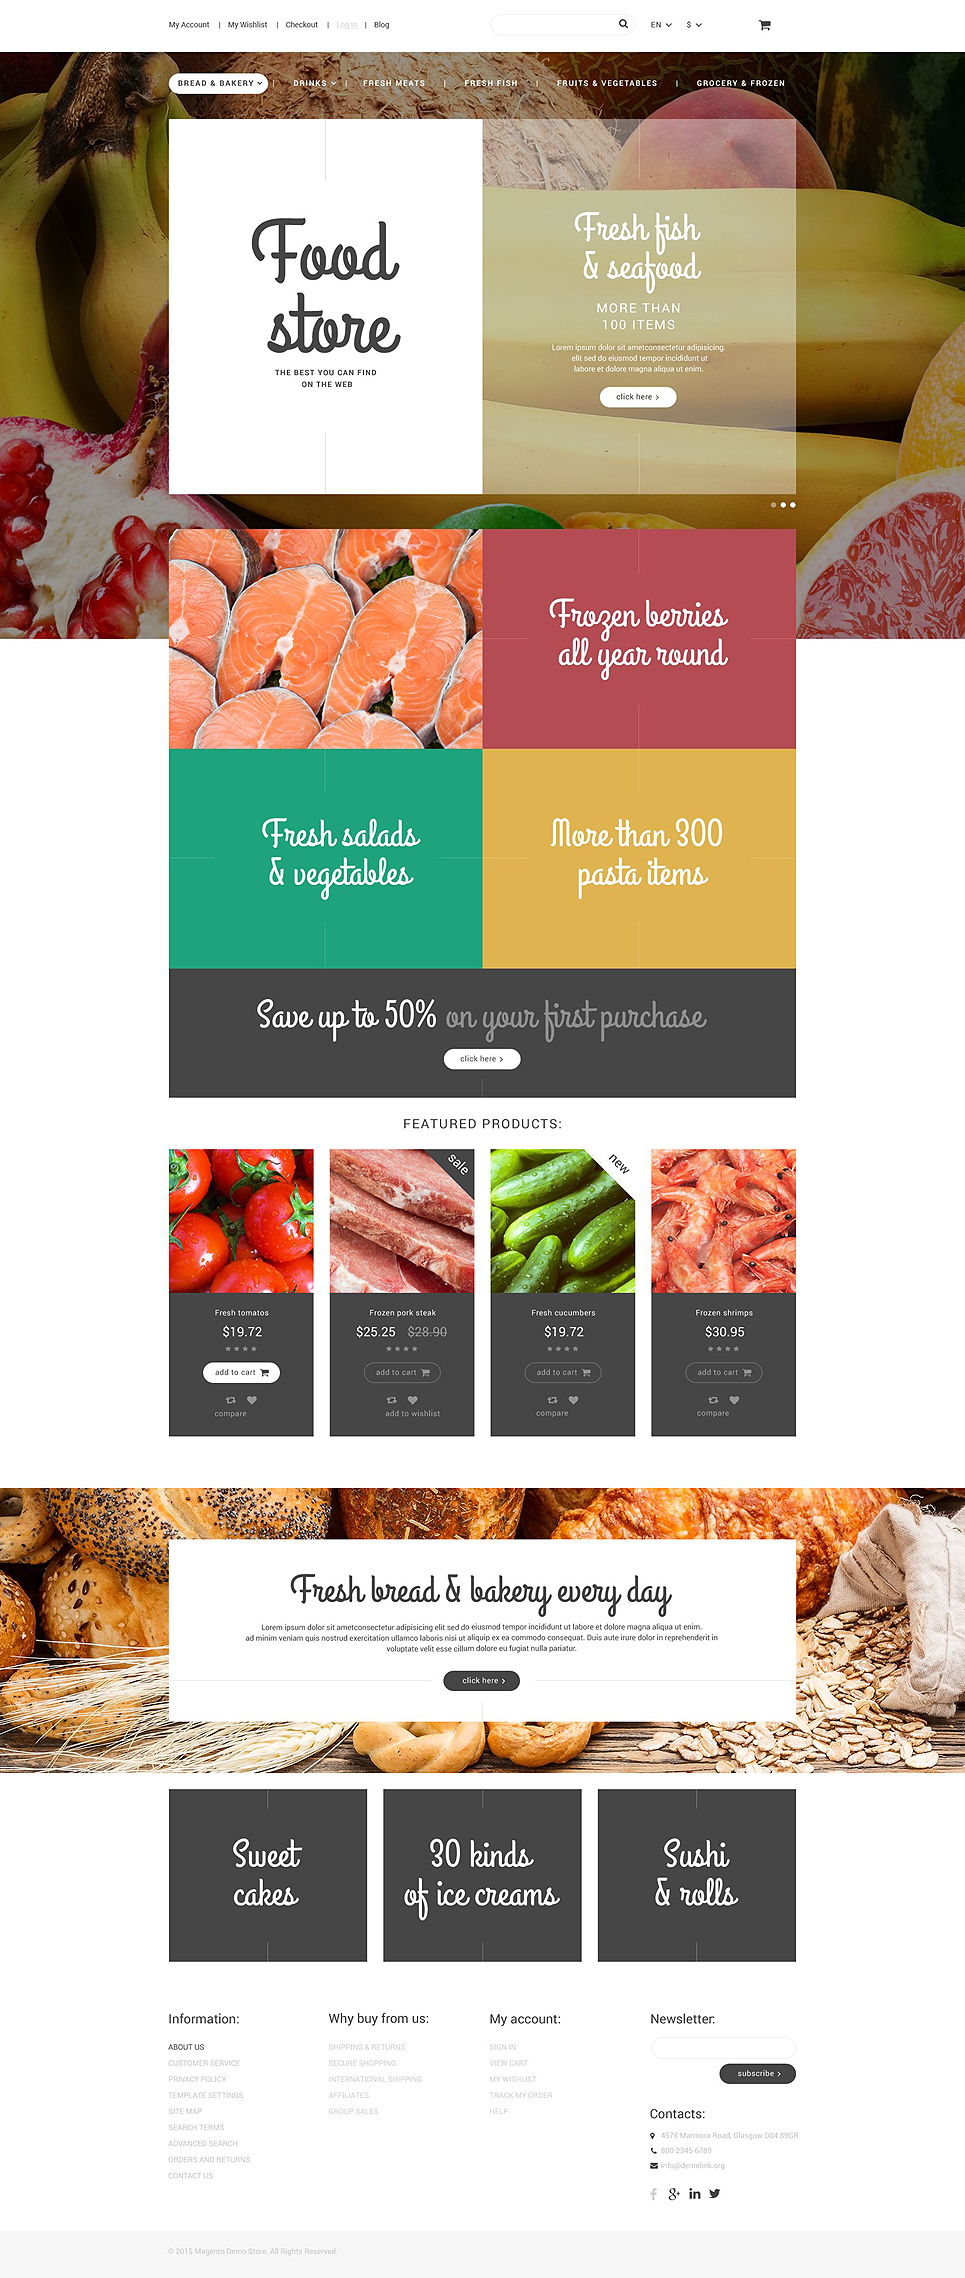 Food Store Magento Theme | ProperHost on newsletter templates for middle school, newsletter templates for customer service, newsletter templates for 2nd grade,